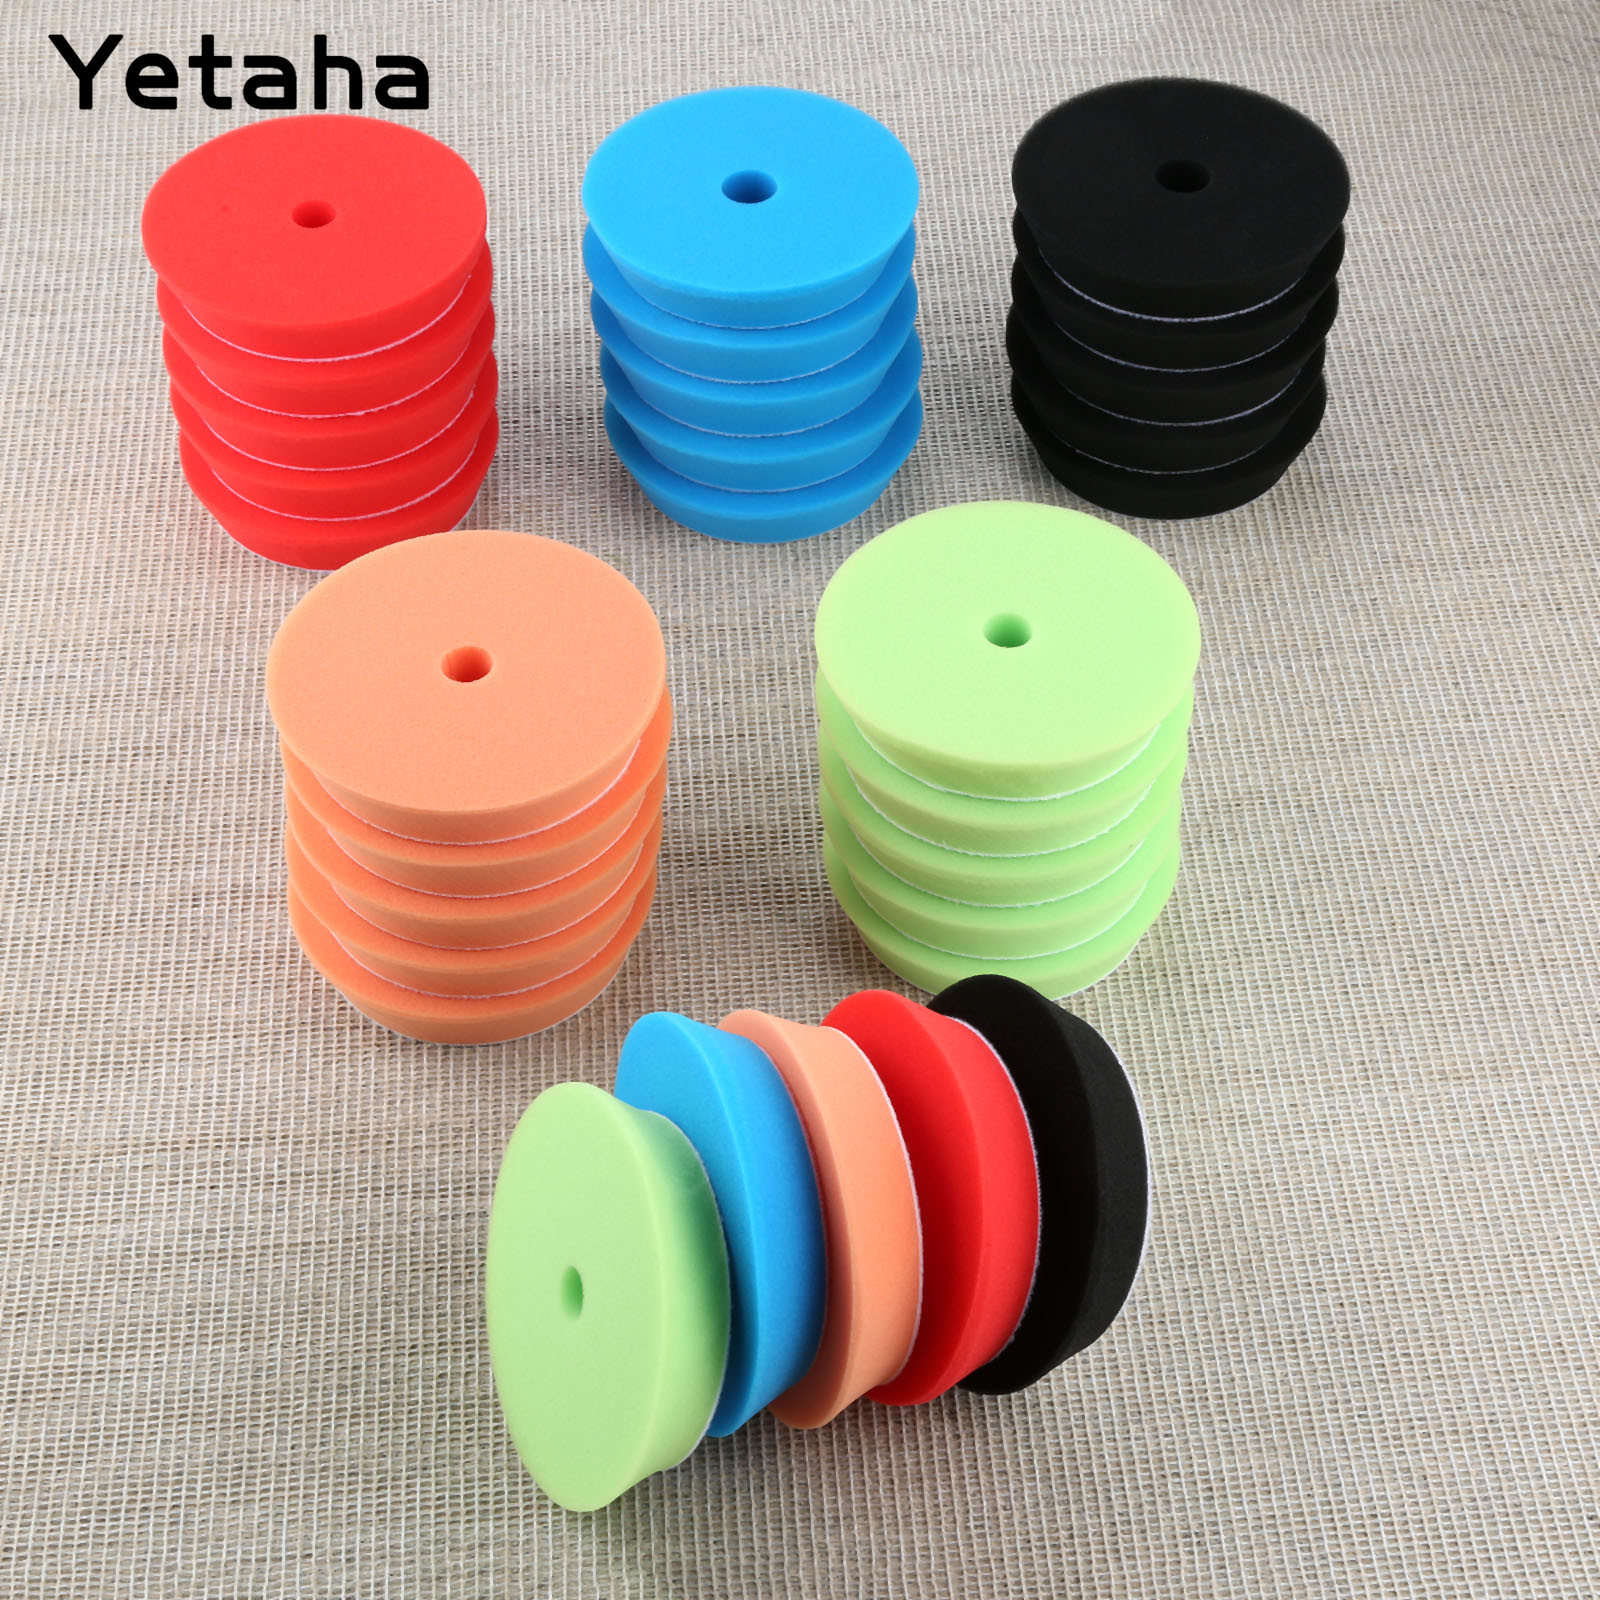 Yetaha 5Pcs 6inch 150mm Car Polishing Buffing Sponge Pads Set Car Wash For Car Polisher Cleaning Detailing Polishing Tool-in Sponges, Cloths & Brushes from Automobiles & Motorcycles